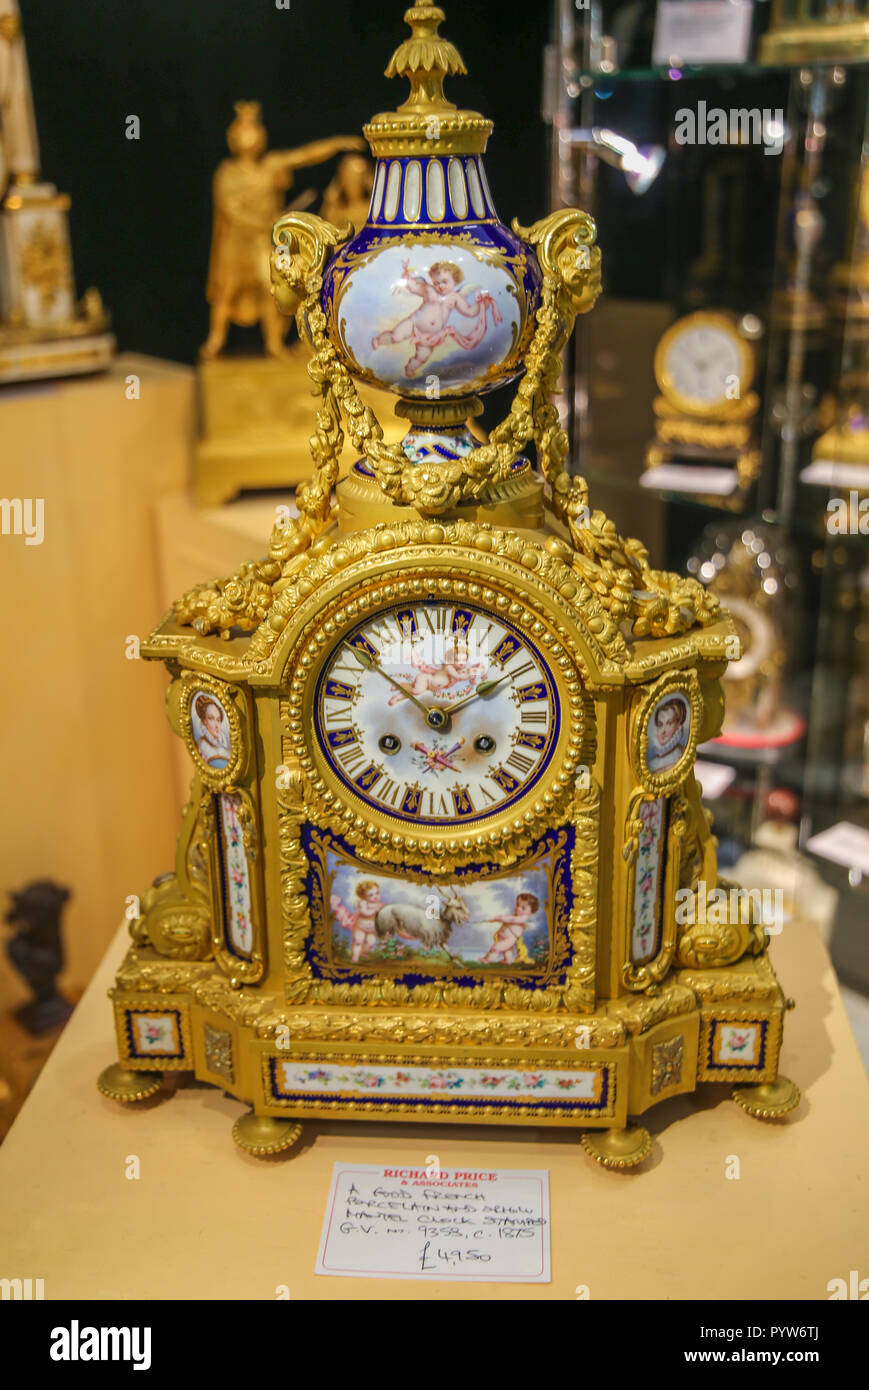 London UK 30 October 2018 Now in its 28th year the Winter and Art Fair Richard Price and associates offering outstanding quality,with some exquisite example  of antique clocks French Porcelain and ormolu circa 1875 on offer for £4950.00 Credit: Paul Quezada-Neiman/Alamy Live News - Stock Image